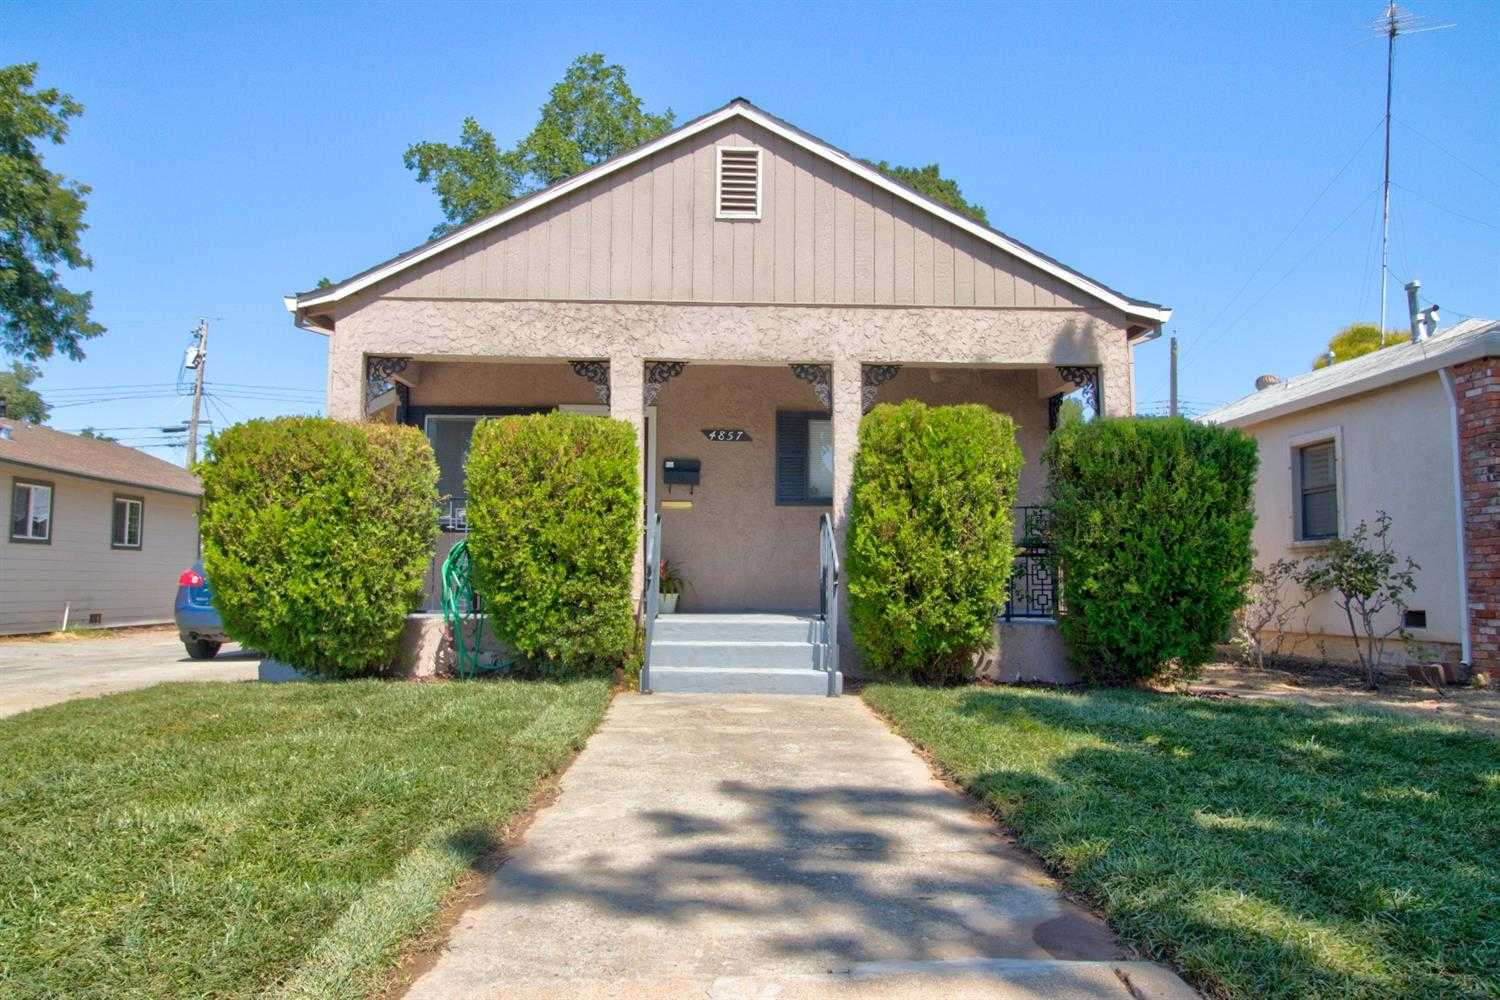 4857 11th Ave Sacramento, CA 95820